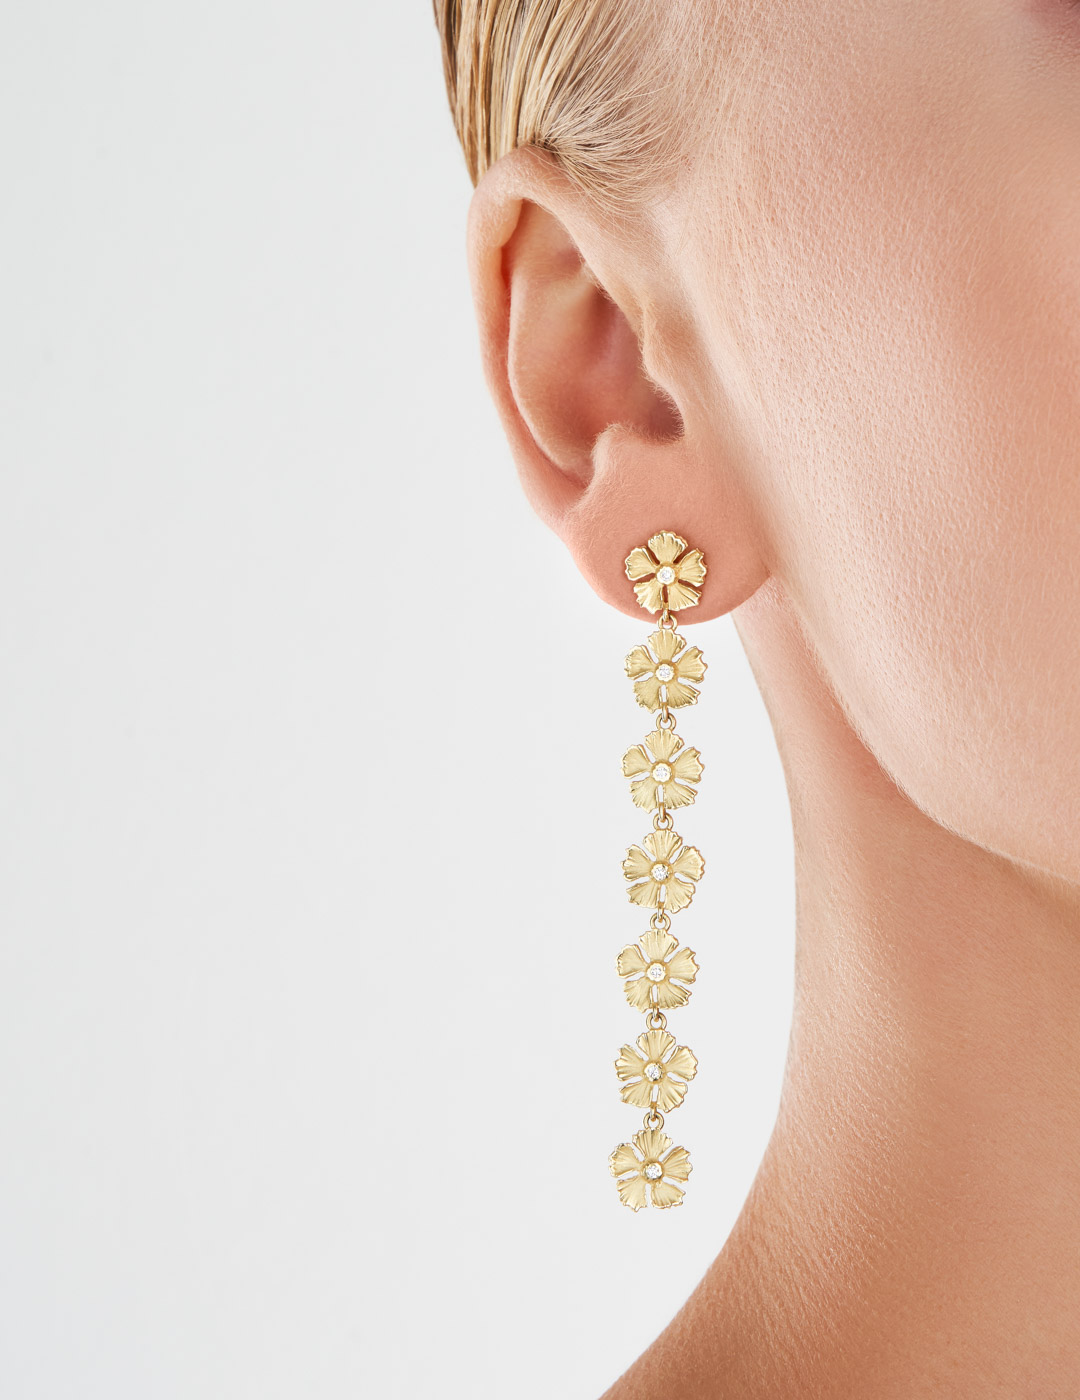 mish_products_earrings_StrawFlwr-Small-Lei-ER-2